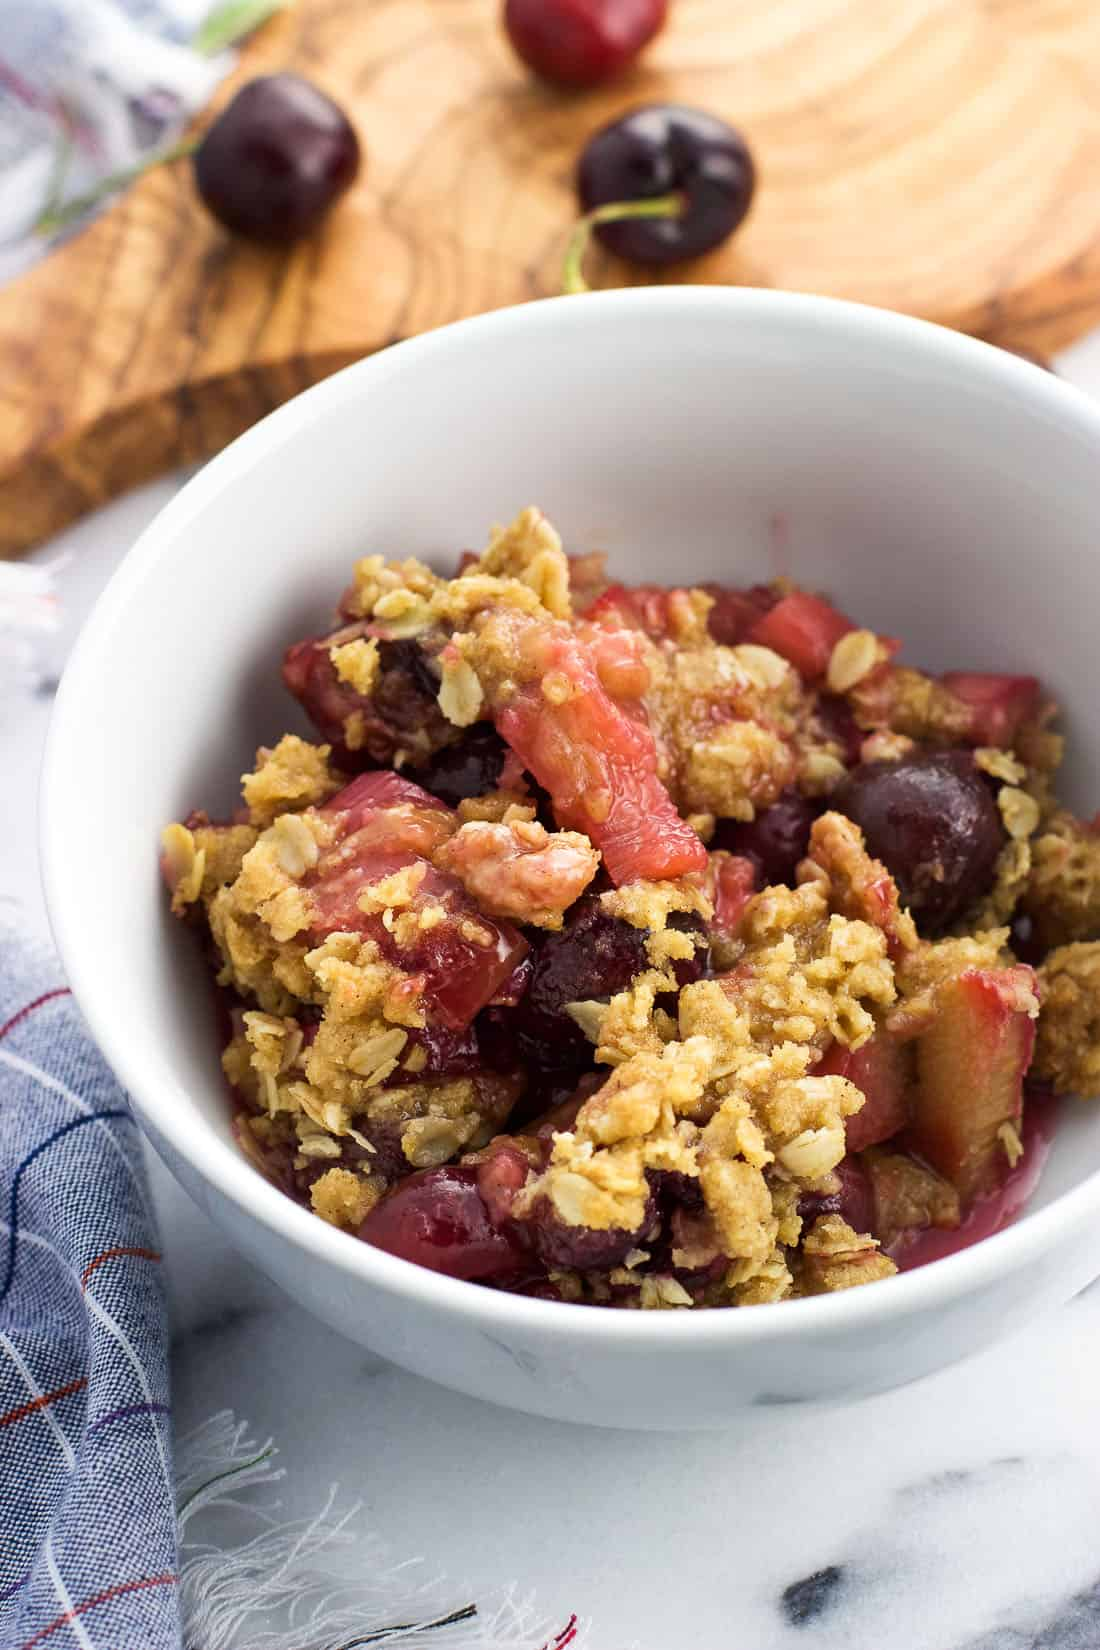 A serving of cherry rhubarb crisp in a bowl